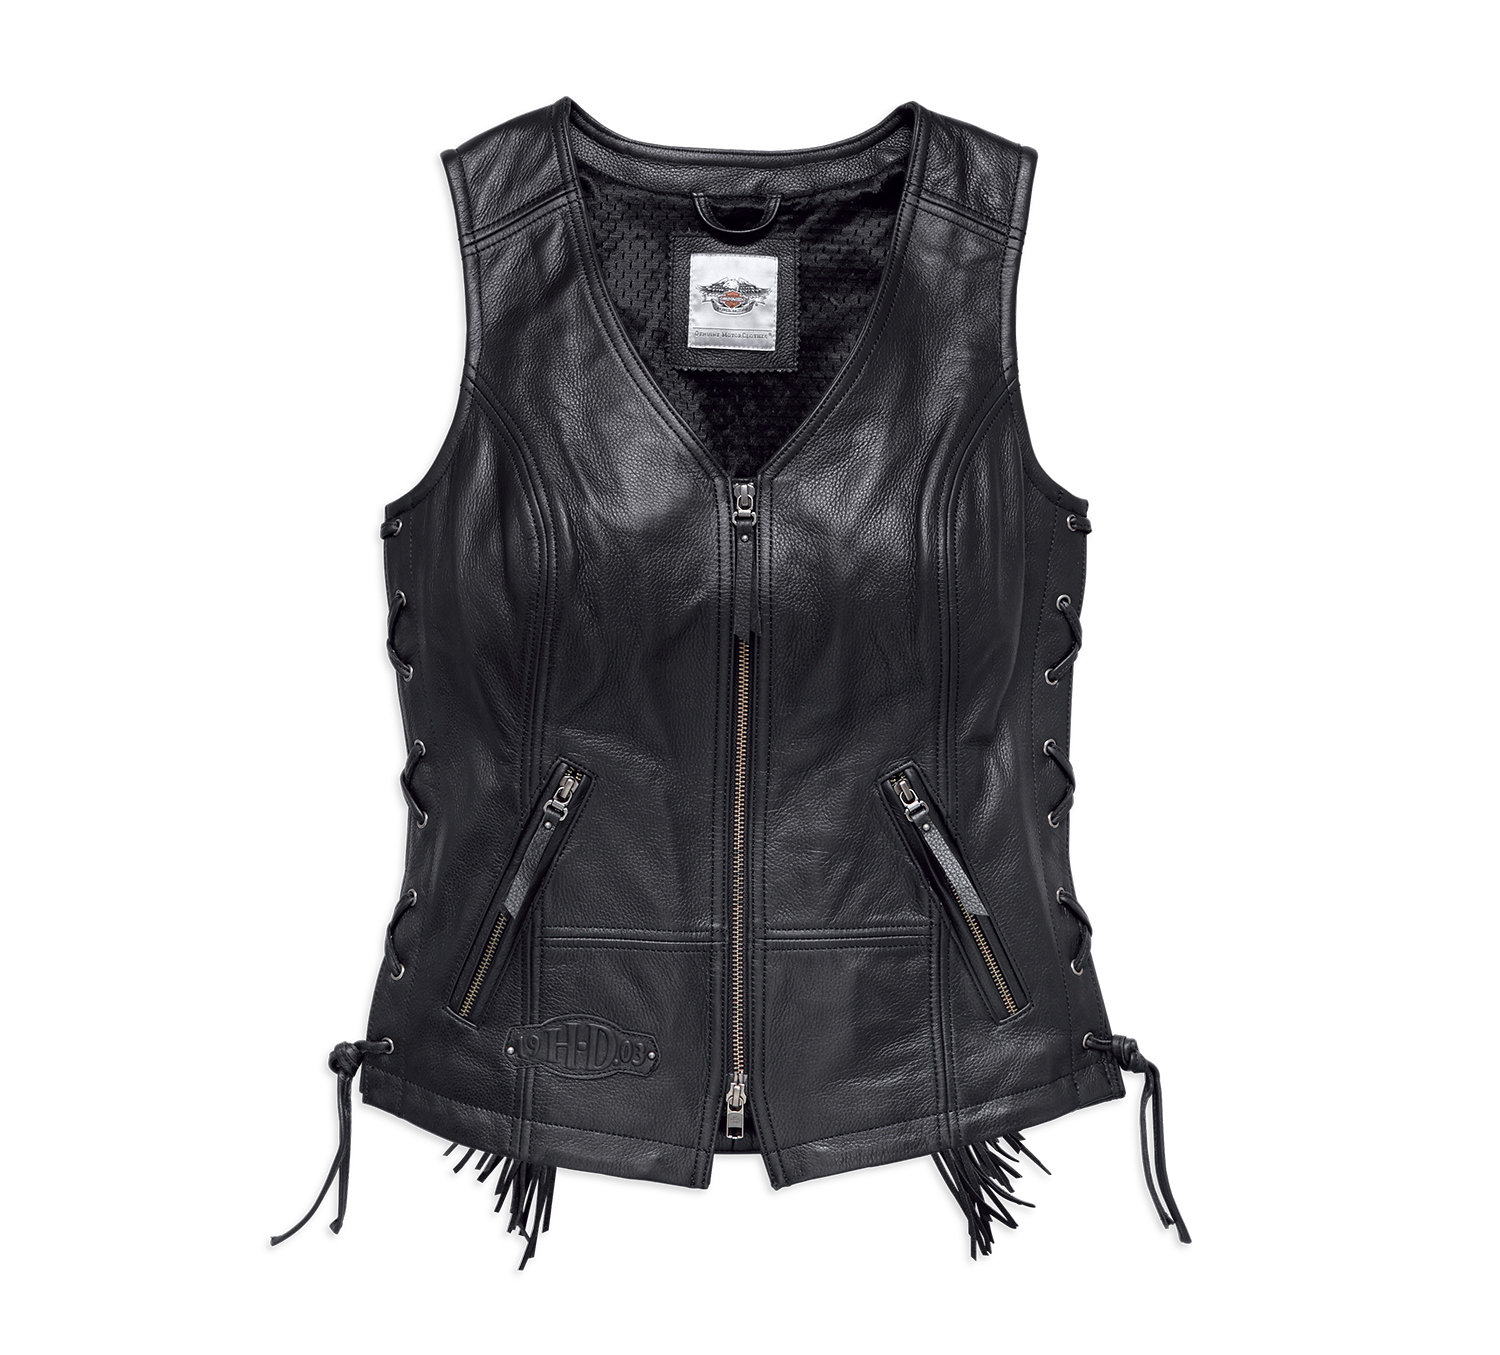 Vest Women Boone Fringed Leather Motorcycle